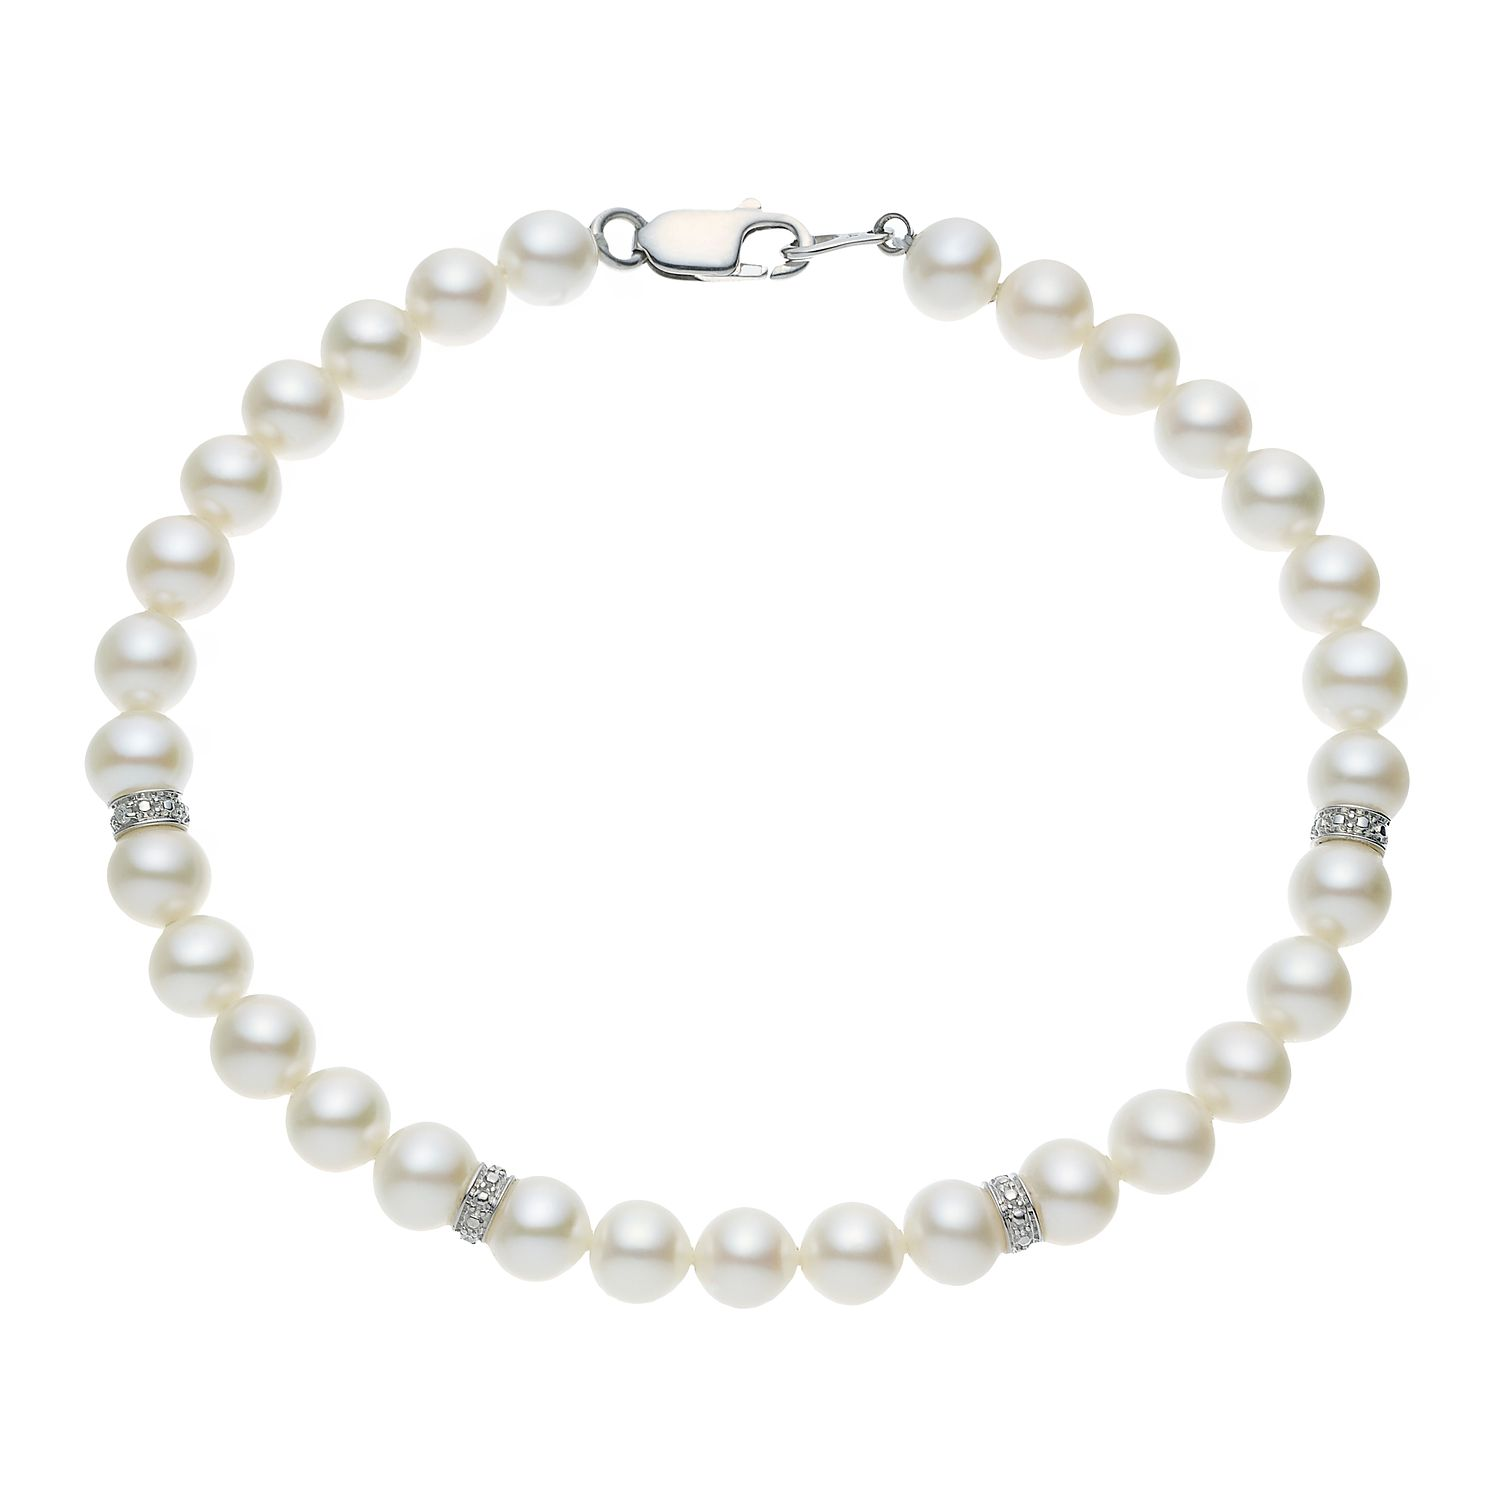 9ct White Gold Cultured Freshwater Pearl & Diamond Bracelet - Product number 4626753